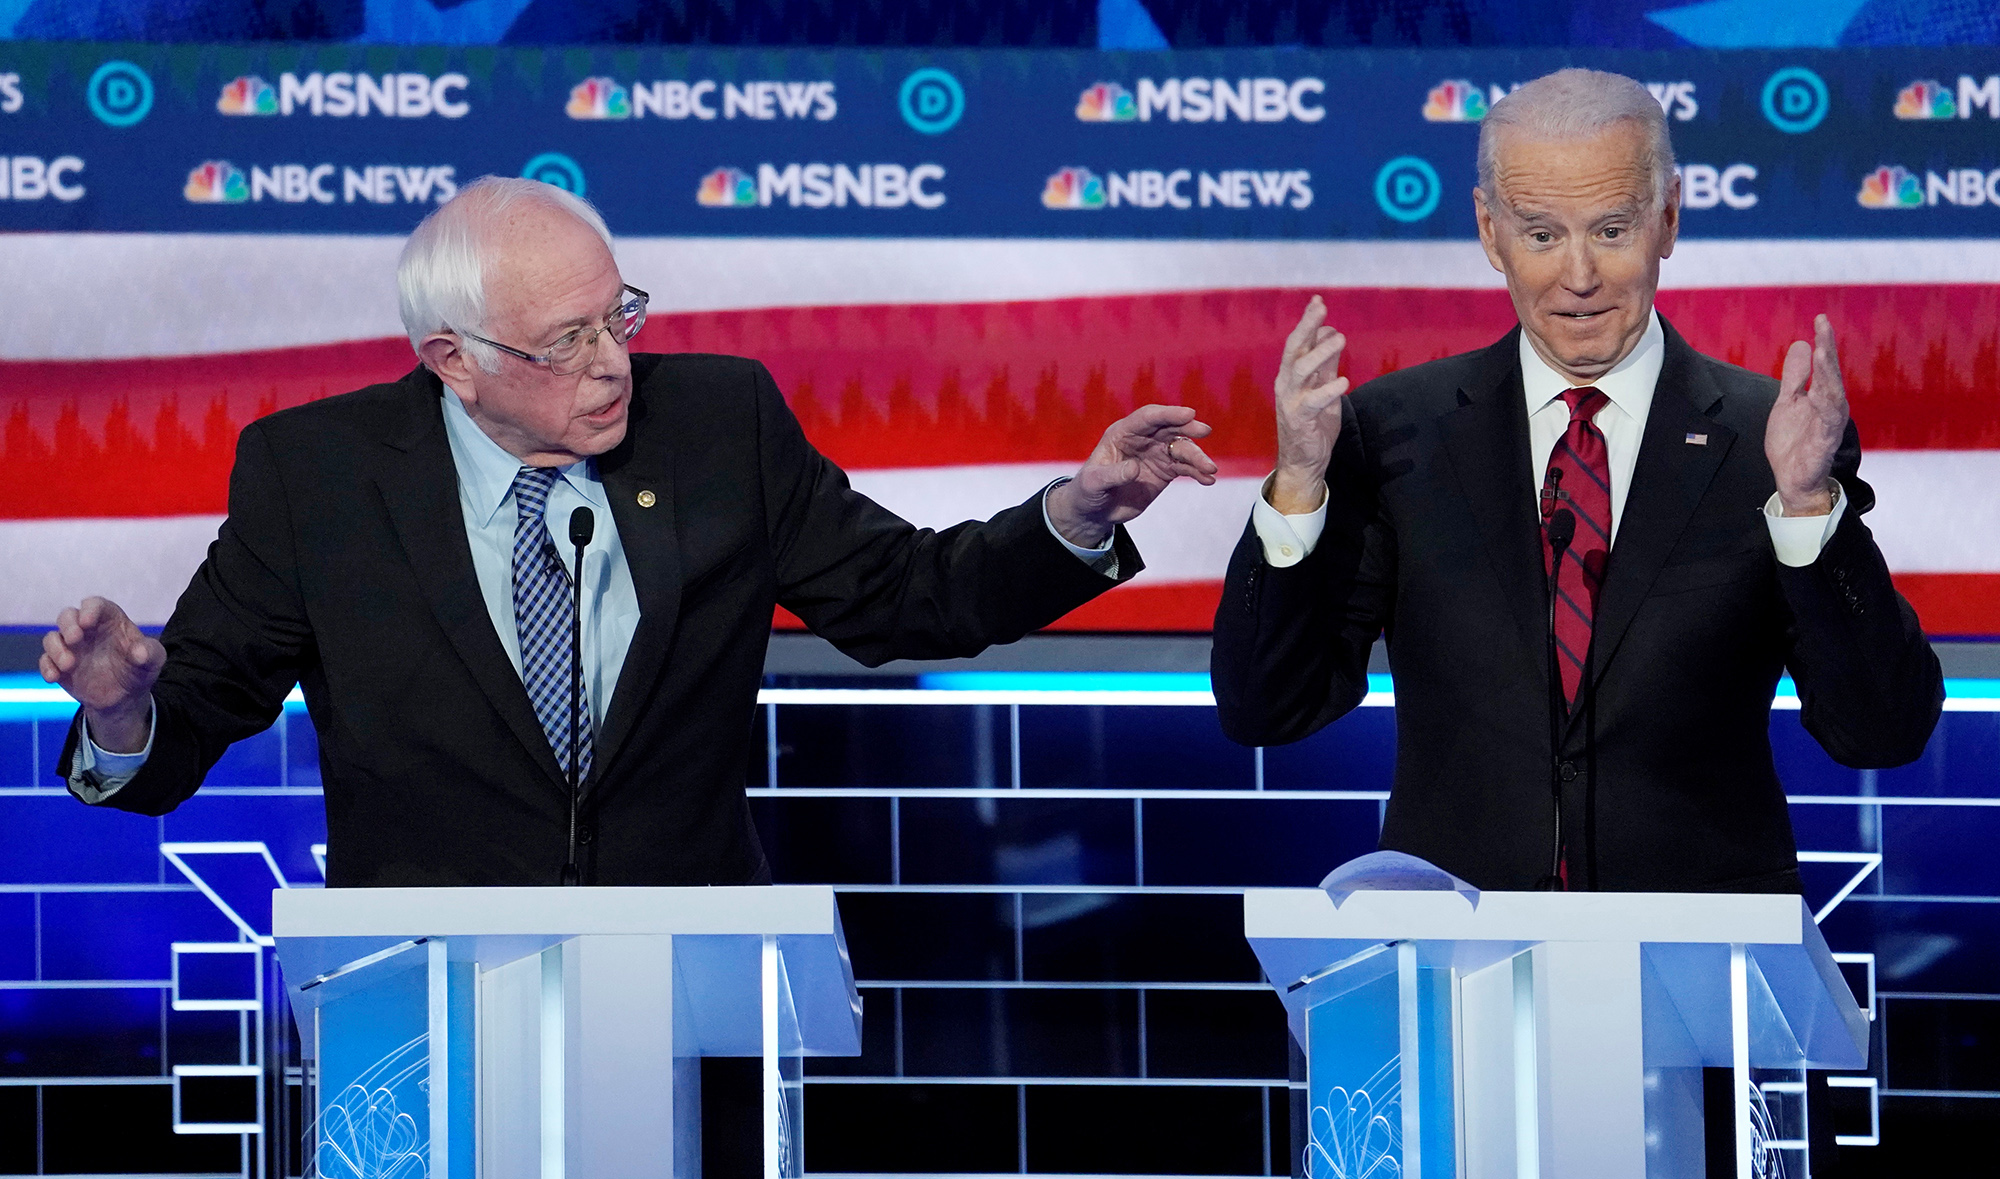 DATE IMPORTED:February 20, 2020Senator Bernie Sanders speaks as former Vice President Joe Biden reacts during the ninth Democratic 2020 U.S. Presidential candidates debate at the Paris Theater in Las Vegas Nevada, U.S., February 19, 2020. REUTERS/Mike Blake TPX IMAGES OF THE DAY